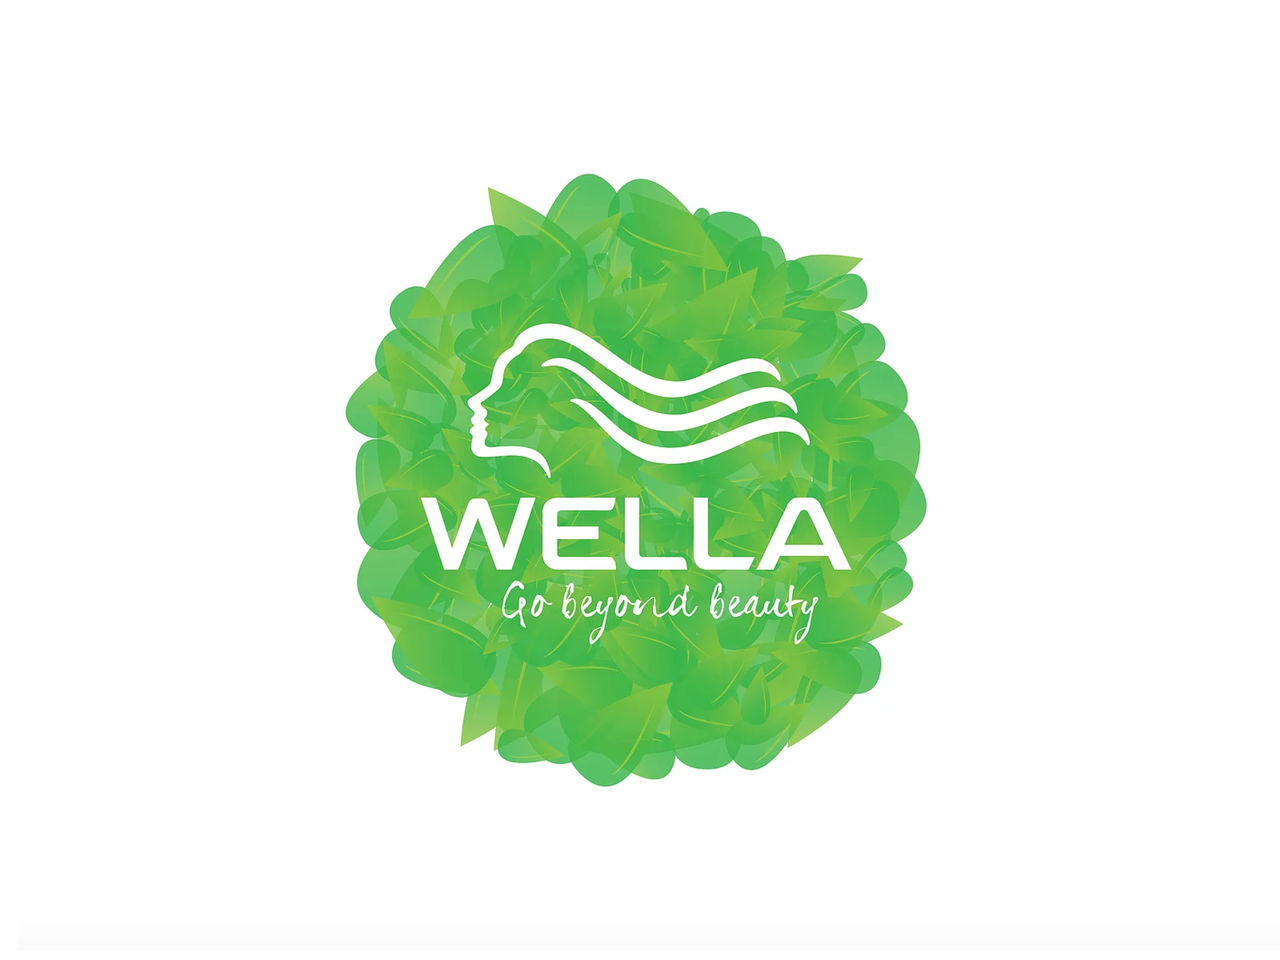 WELLA Go Beyond Beauty